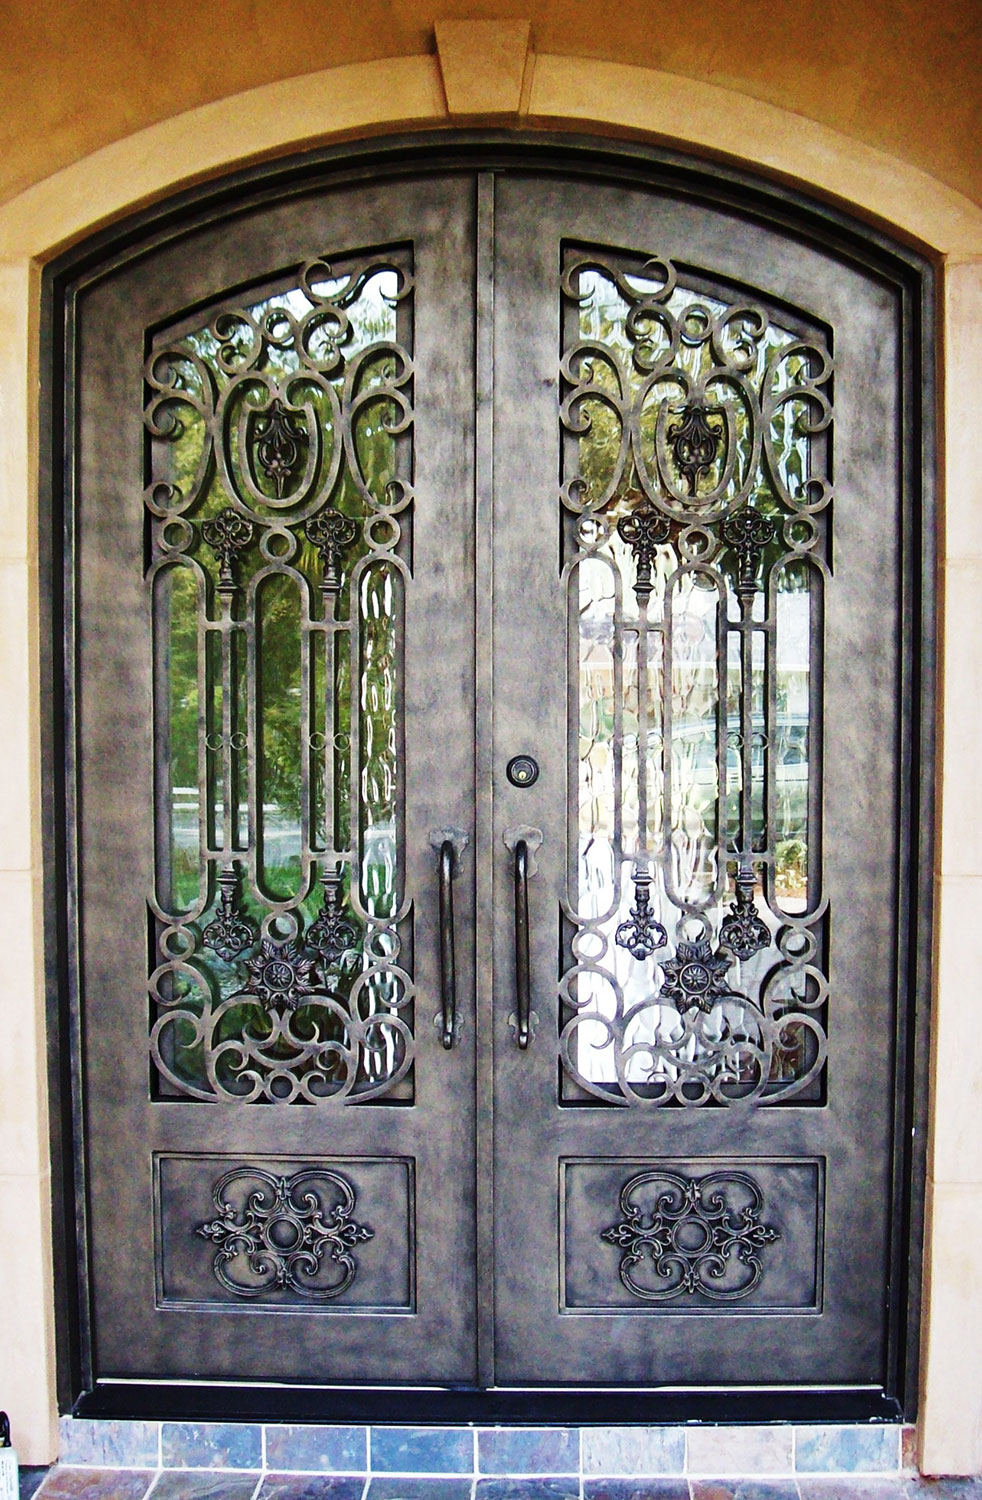 Hench 100% Steel Metal Iron Wrought Iron Doors Miami